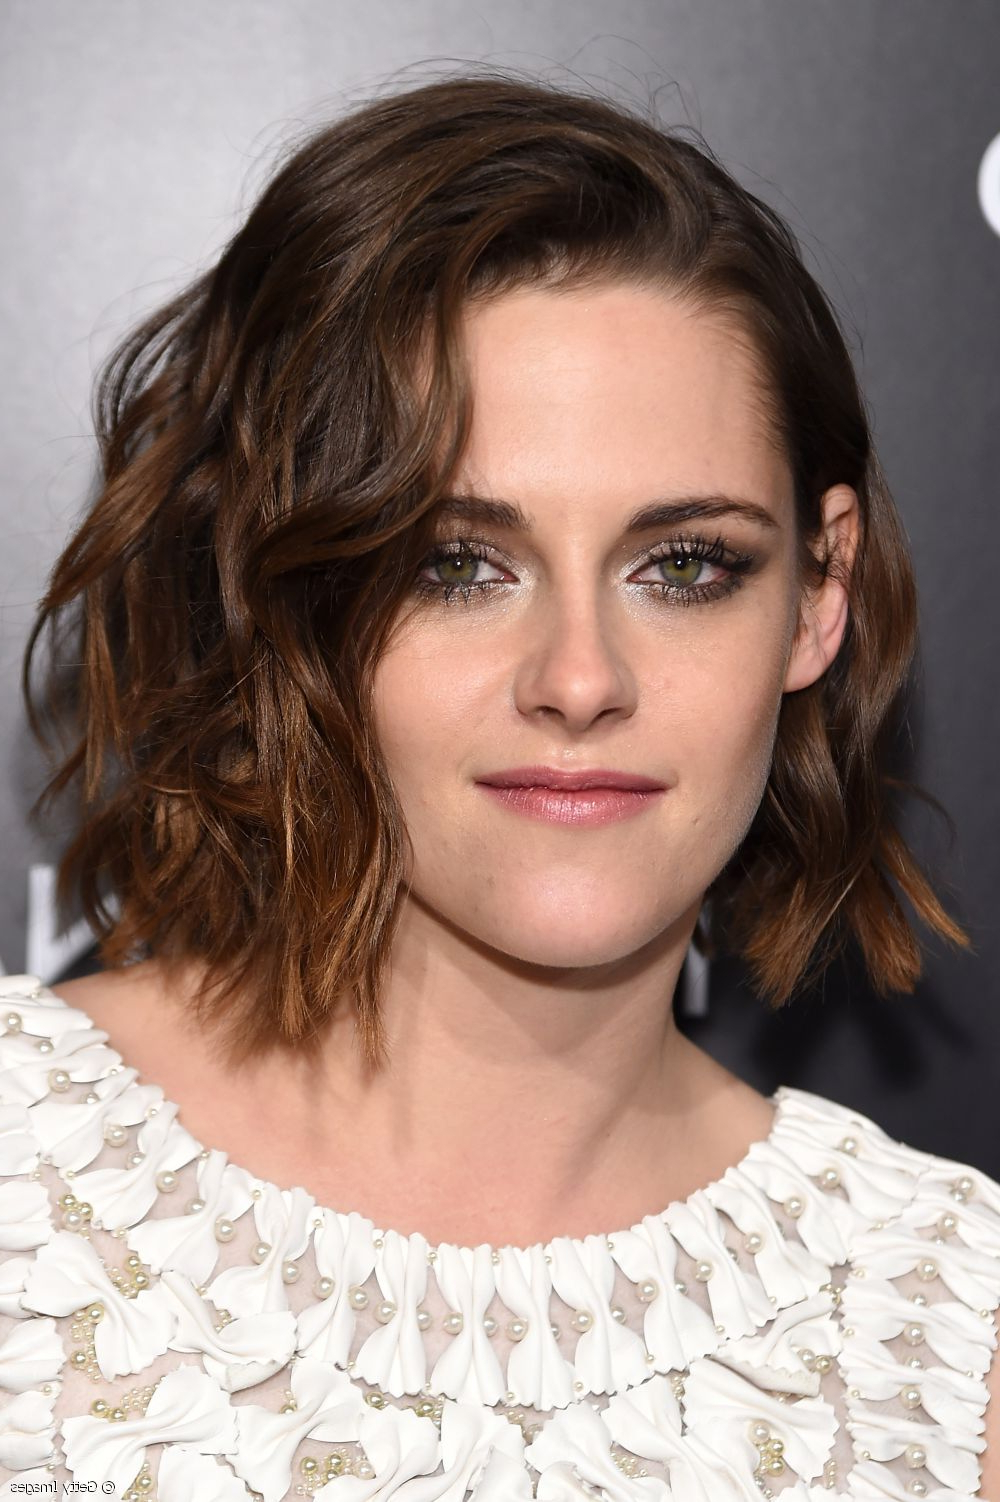 Kristen Stewart Hairstyle Tutorial: Copy Her Curly Bob Intended For Kristen Stewart Short Hairstyles (View 8 of 25)